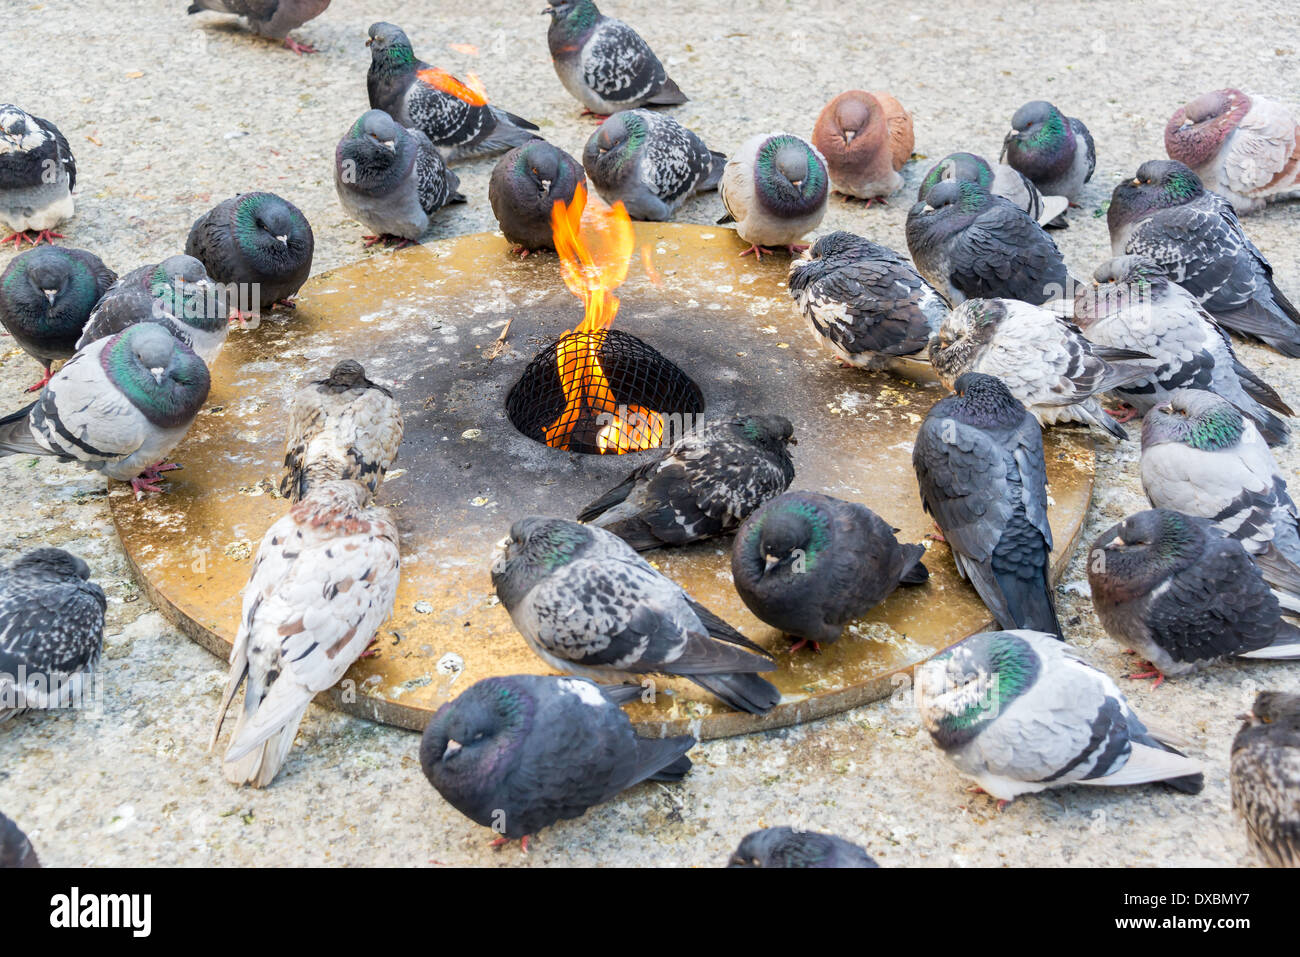 Pigeons trying to keep warm by an eternal flame in a harsh Chicago winter - Stock Image